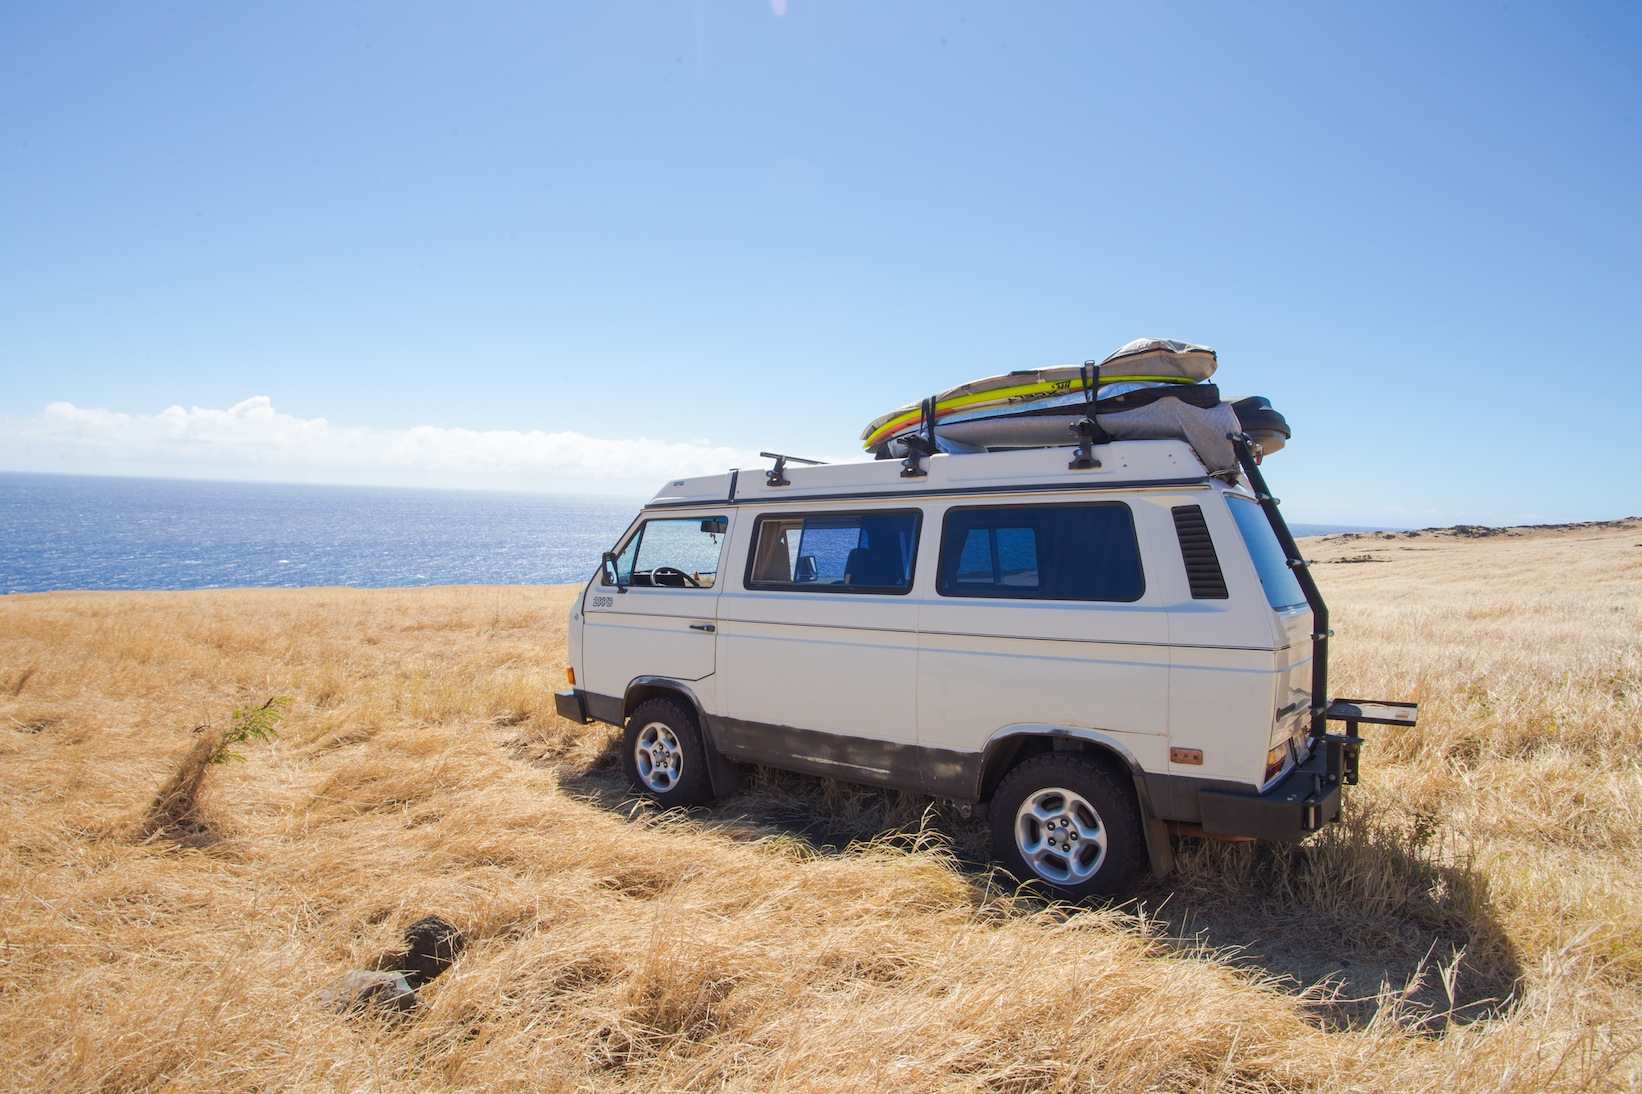 surfboards-van-sunski-roadtrip-maui.jpg